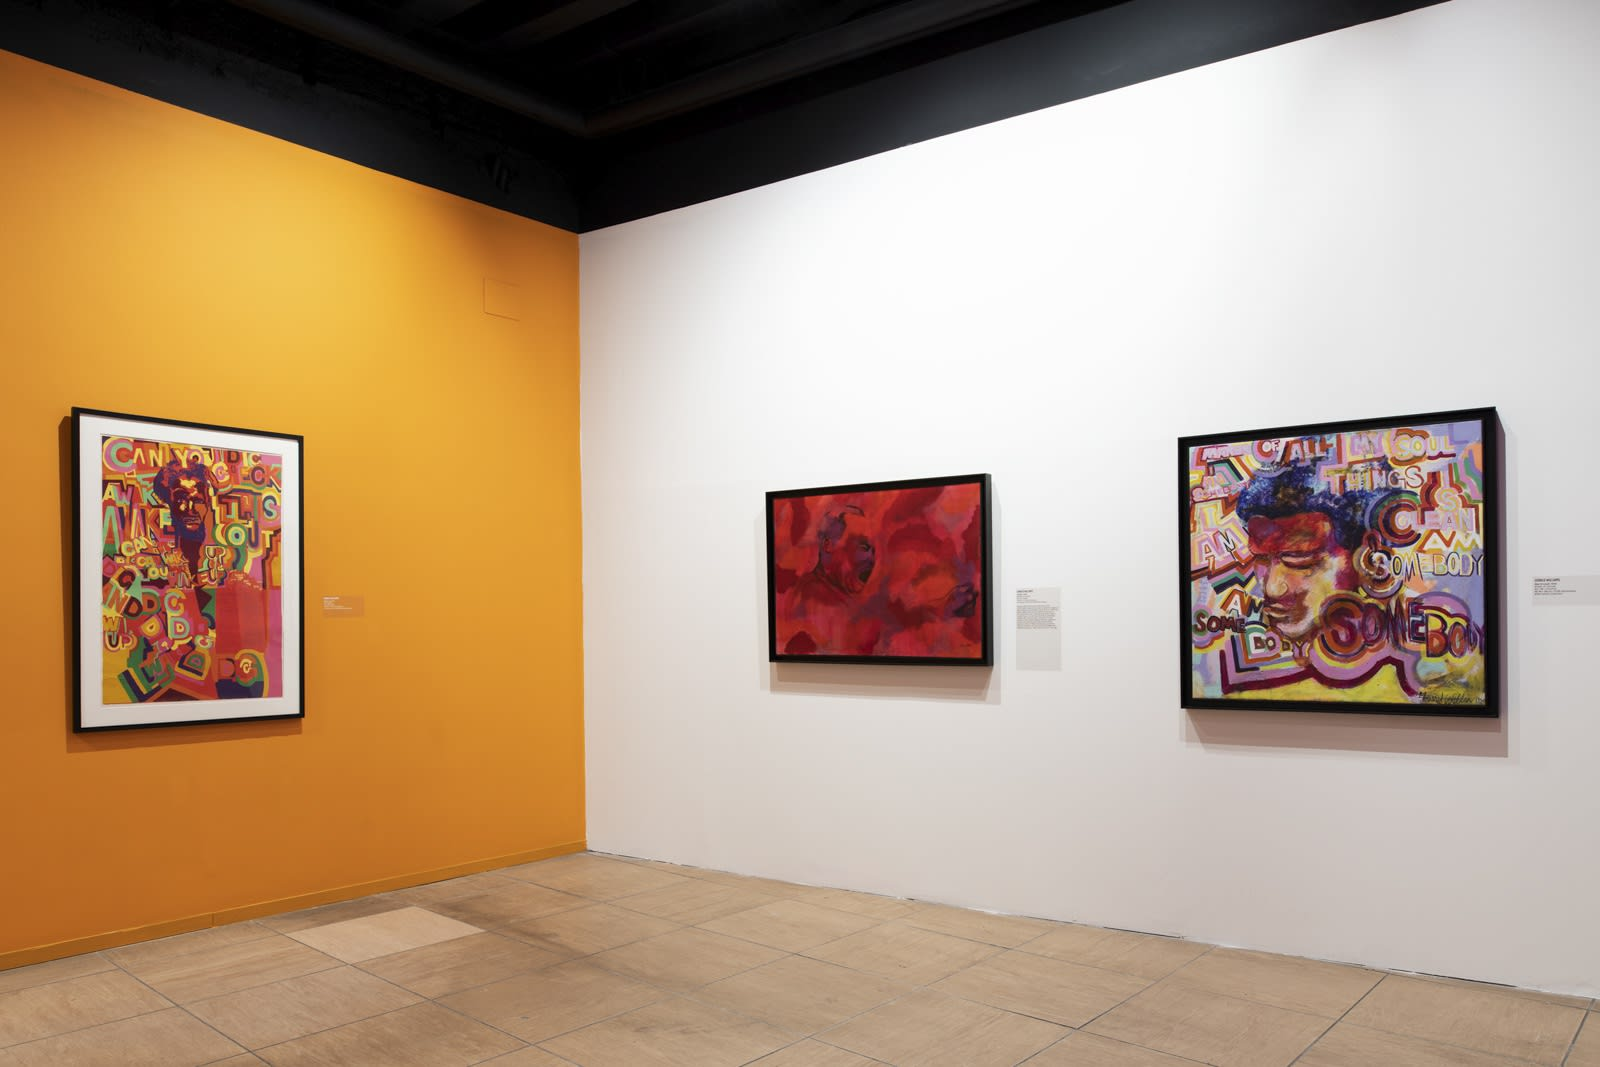 Installation view of AFRICOBRA: Nation Time, Venice Biennale 2019.